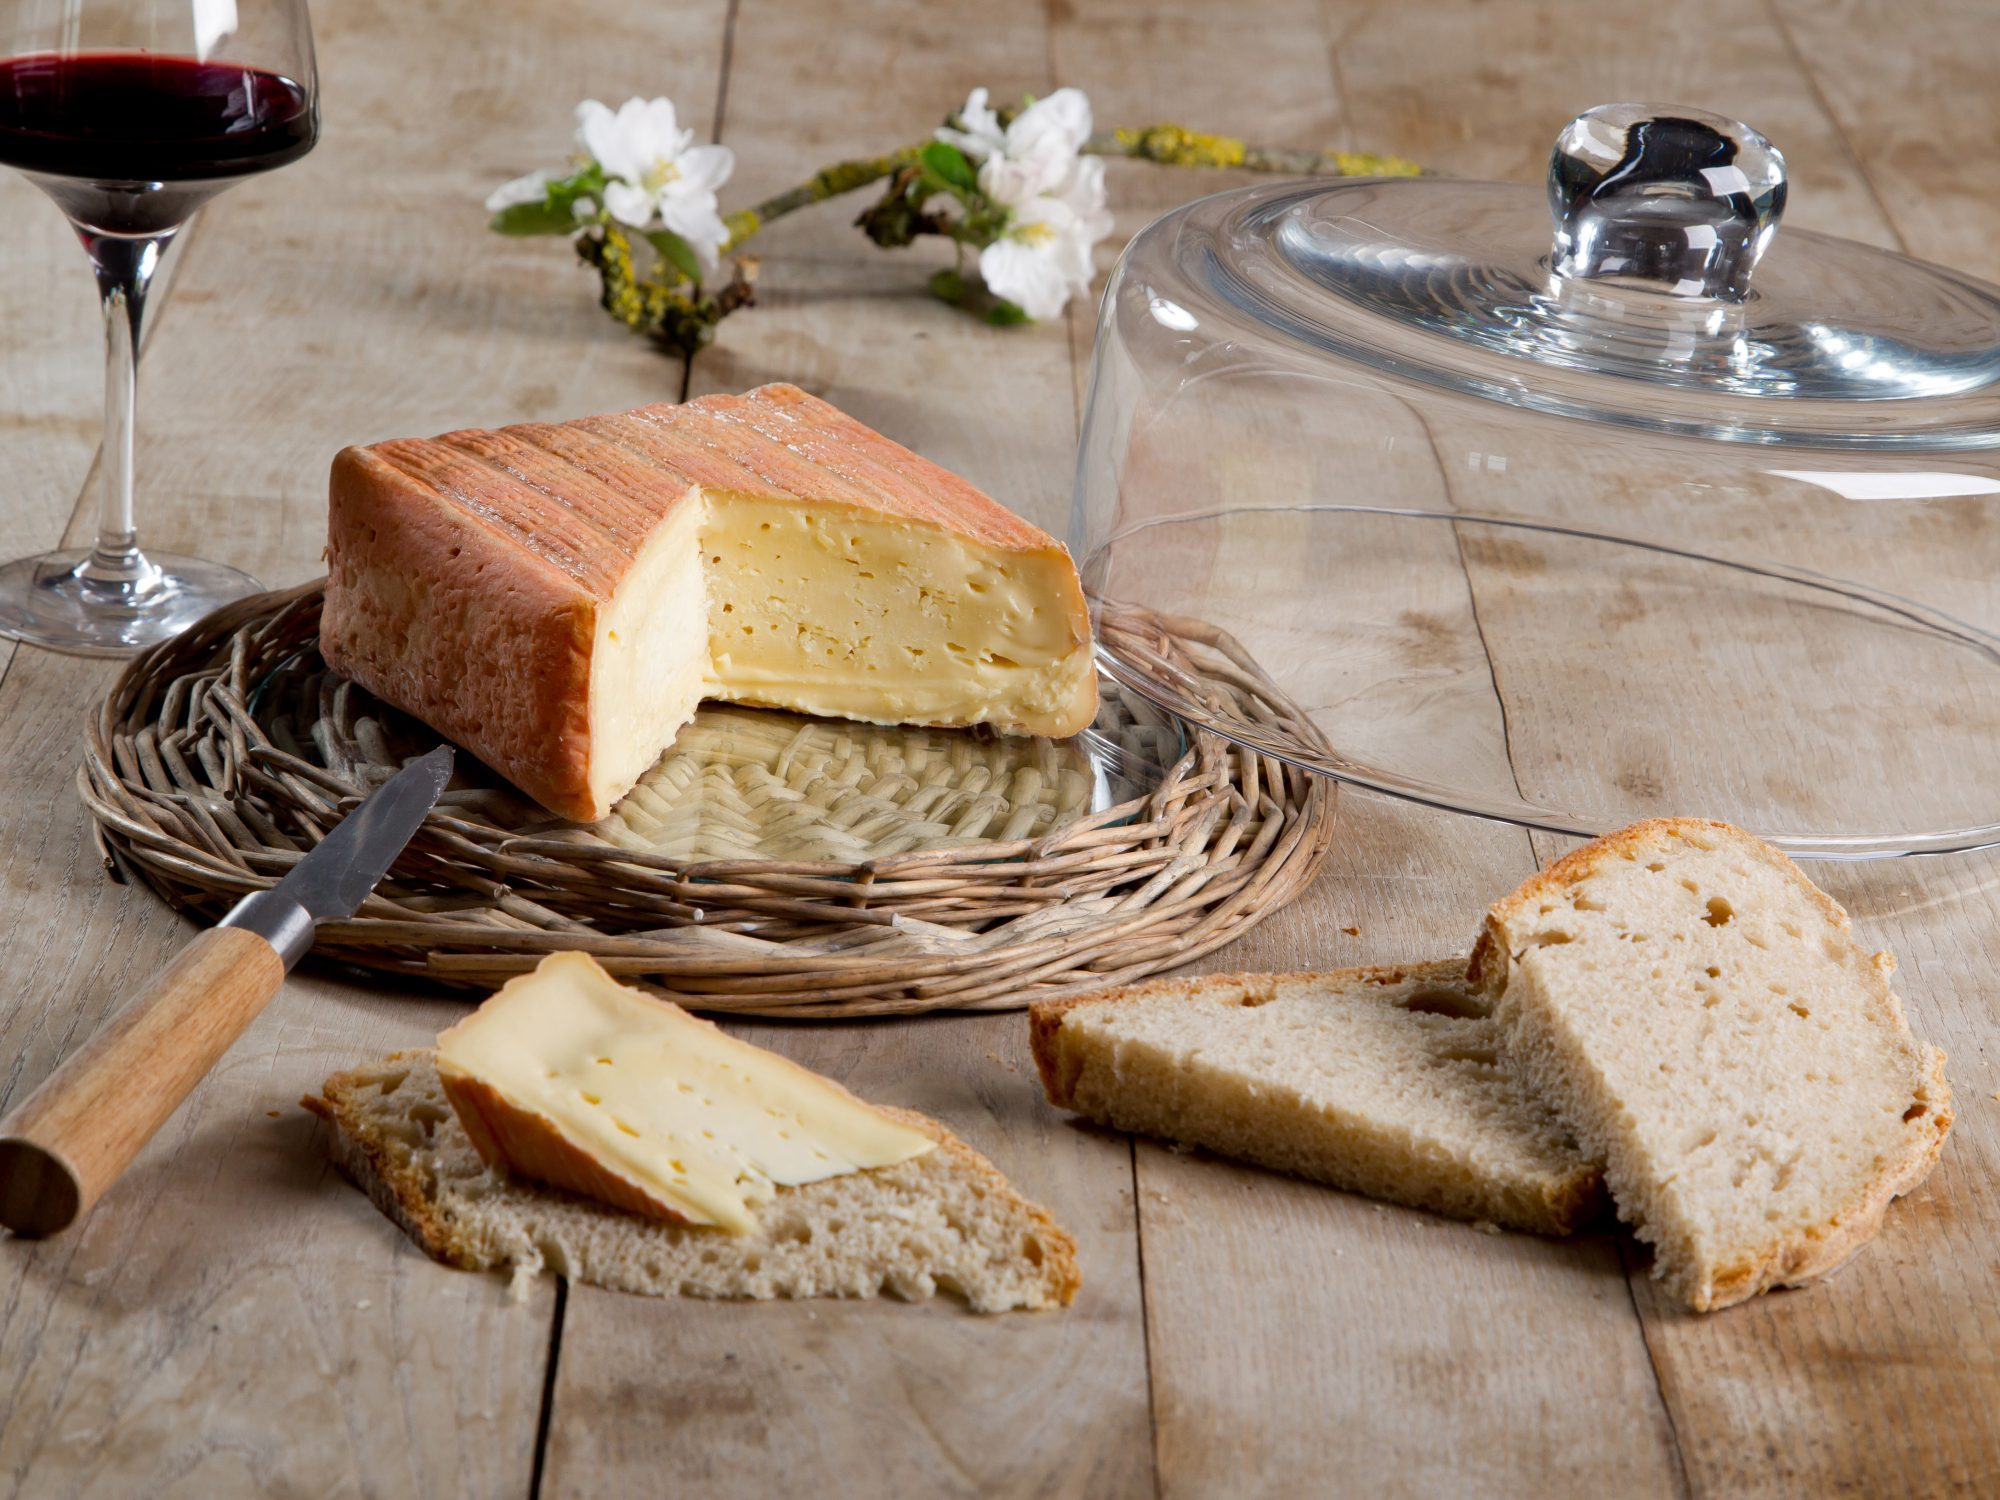 maroilles-obscure-french-cheese.jpg